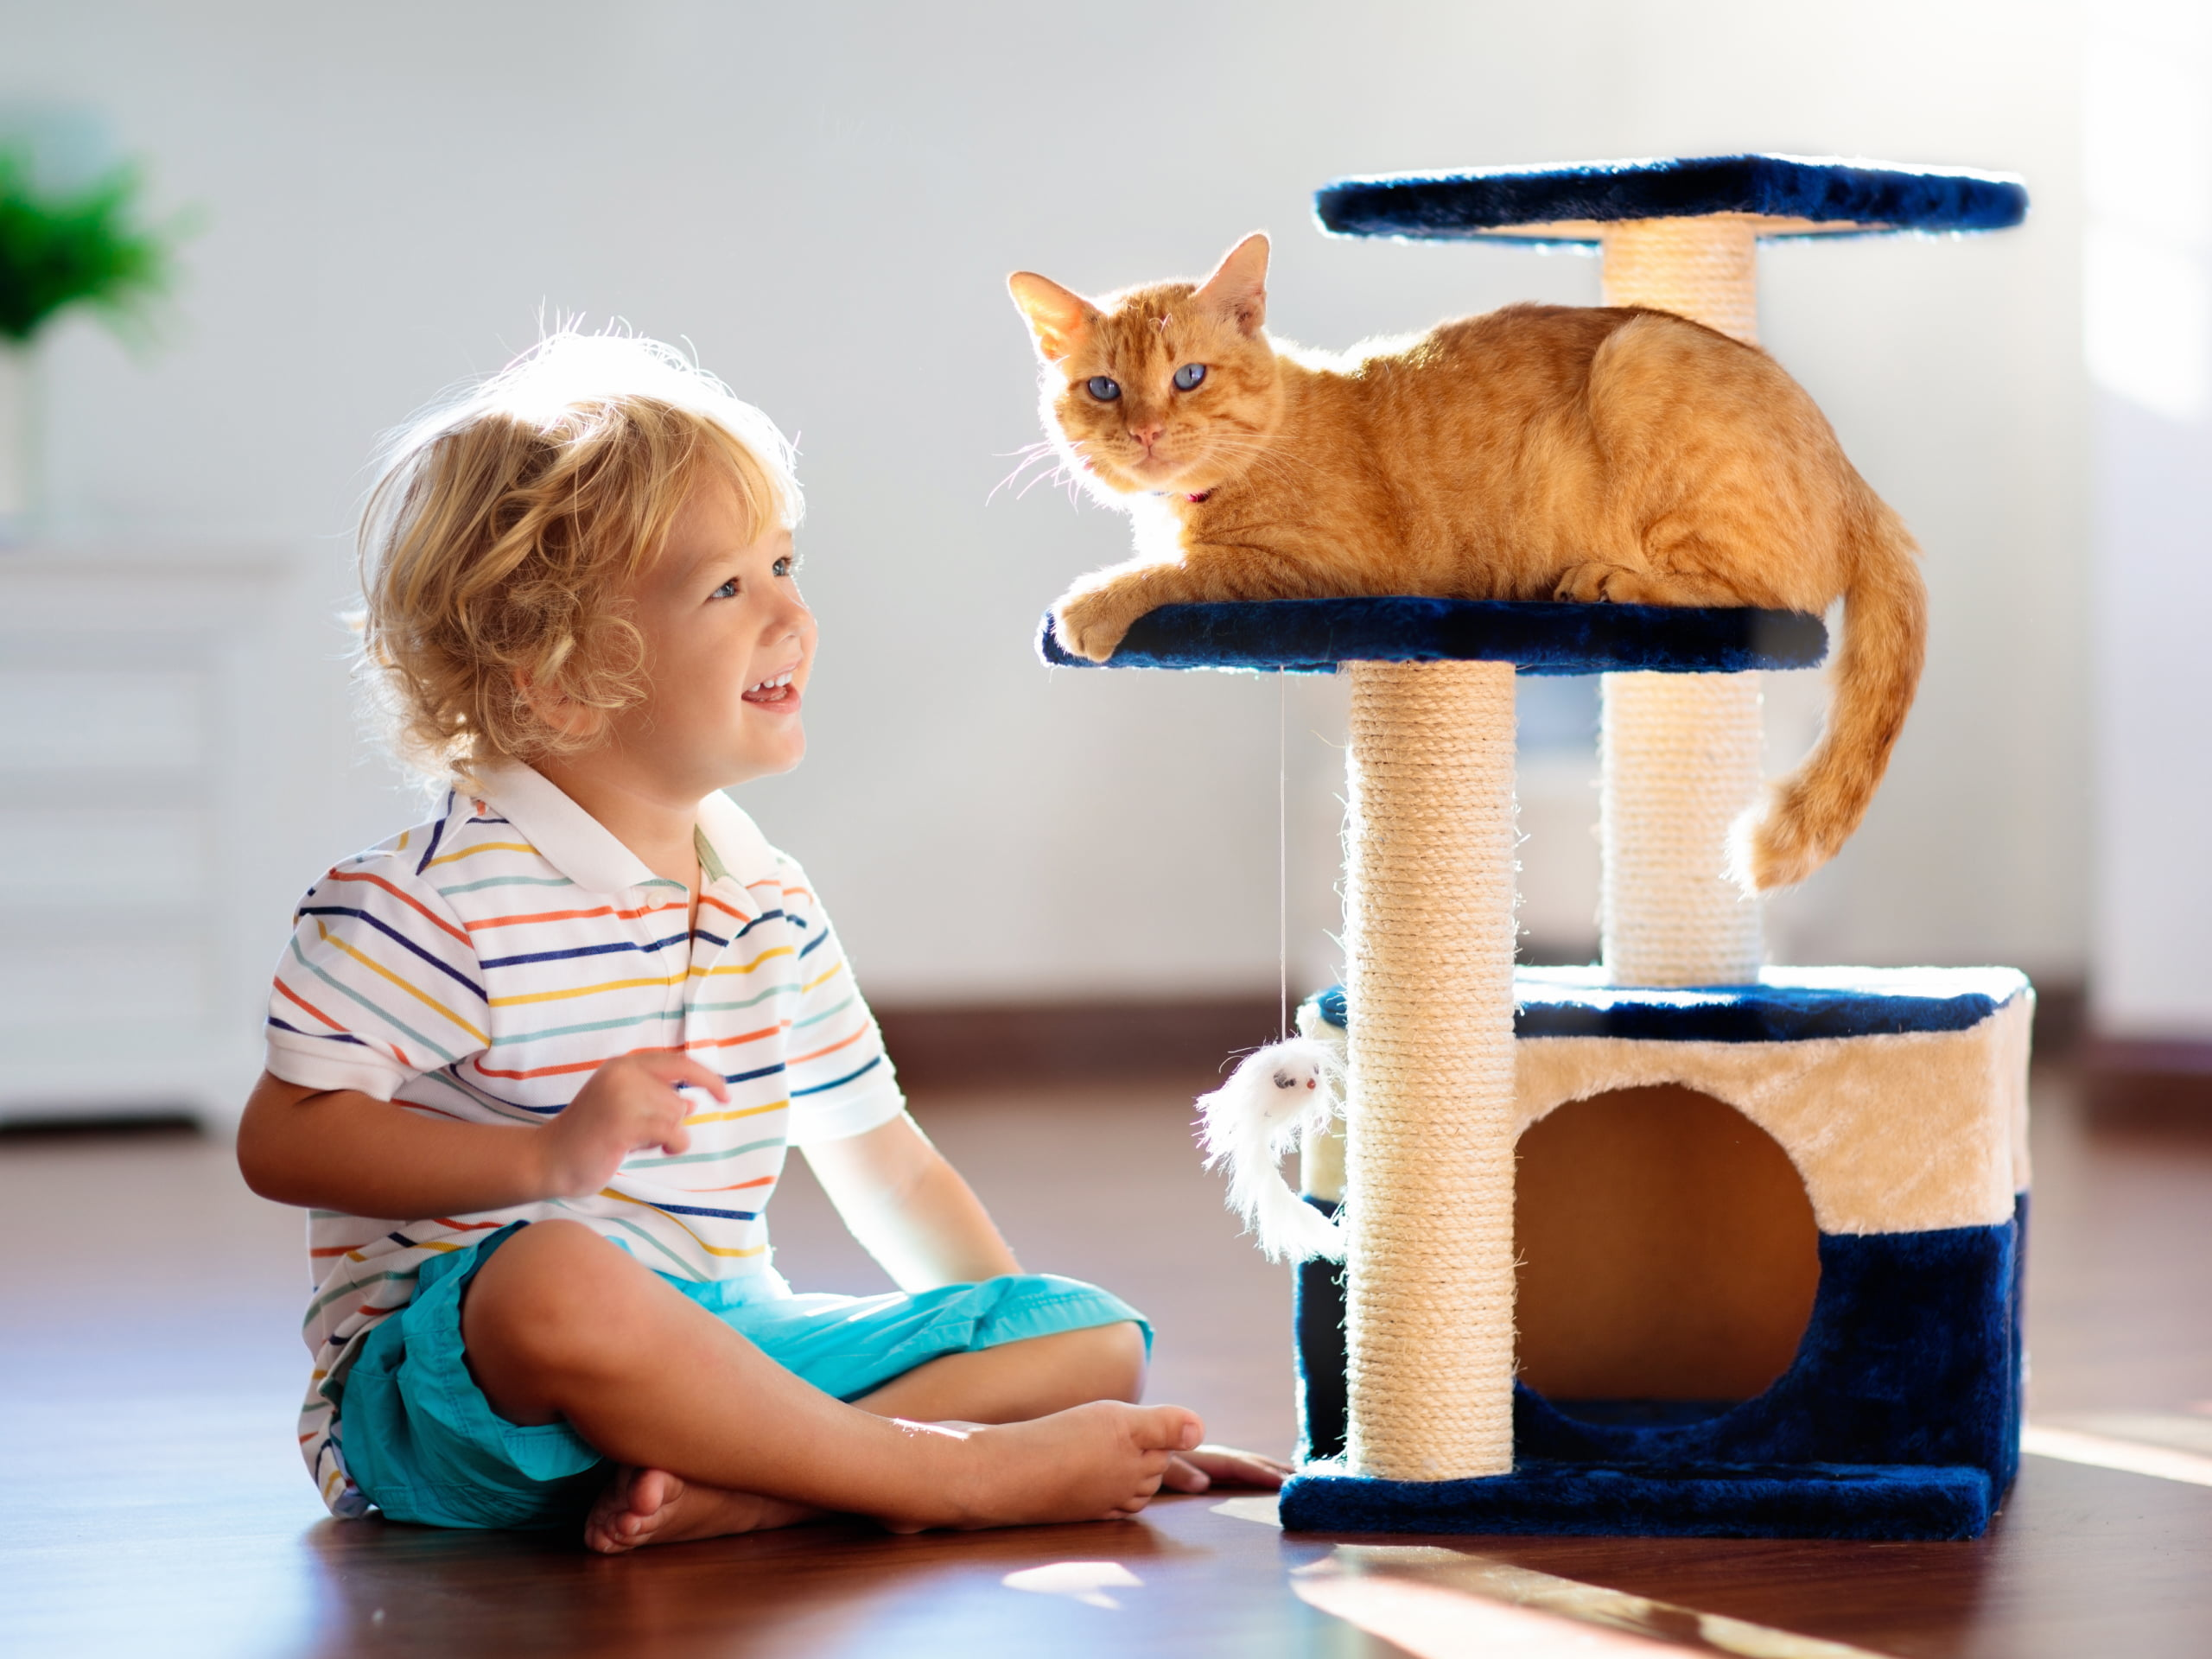 Little boy sitting on the floor next to a cat laying on a cat tree.